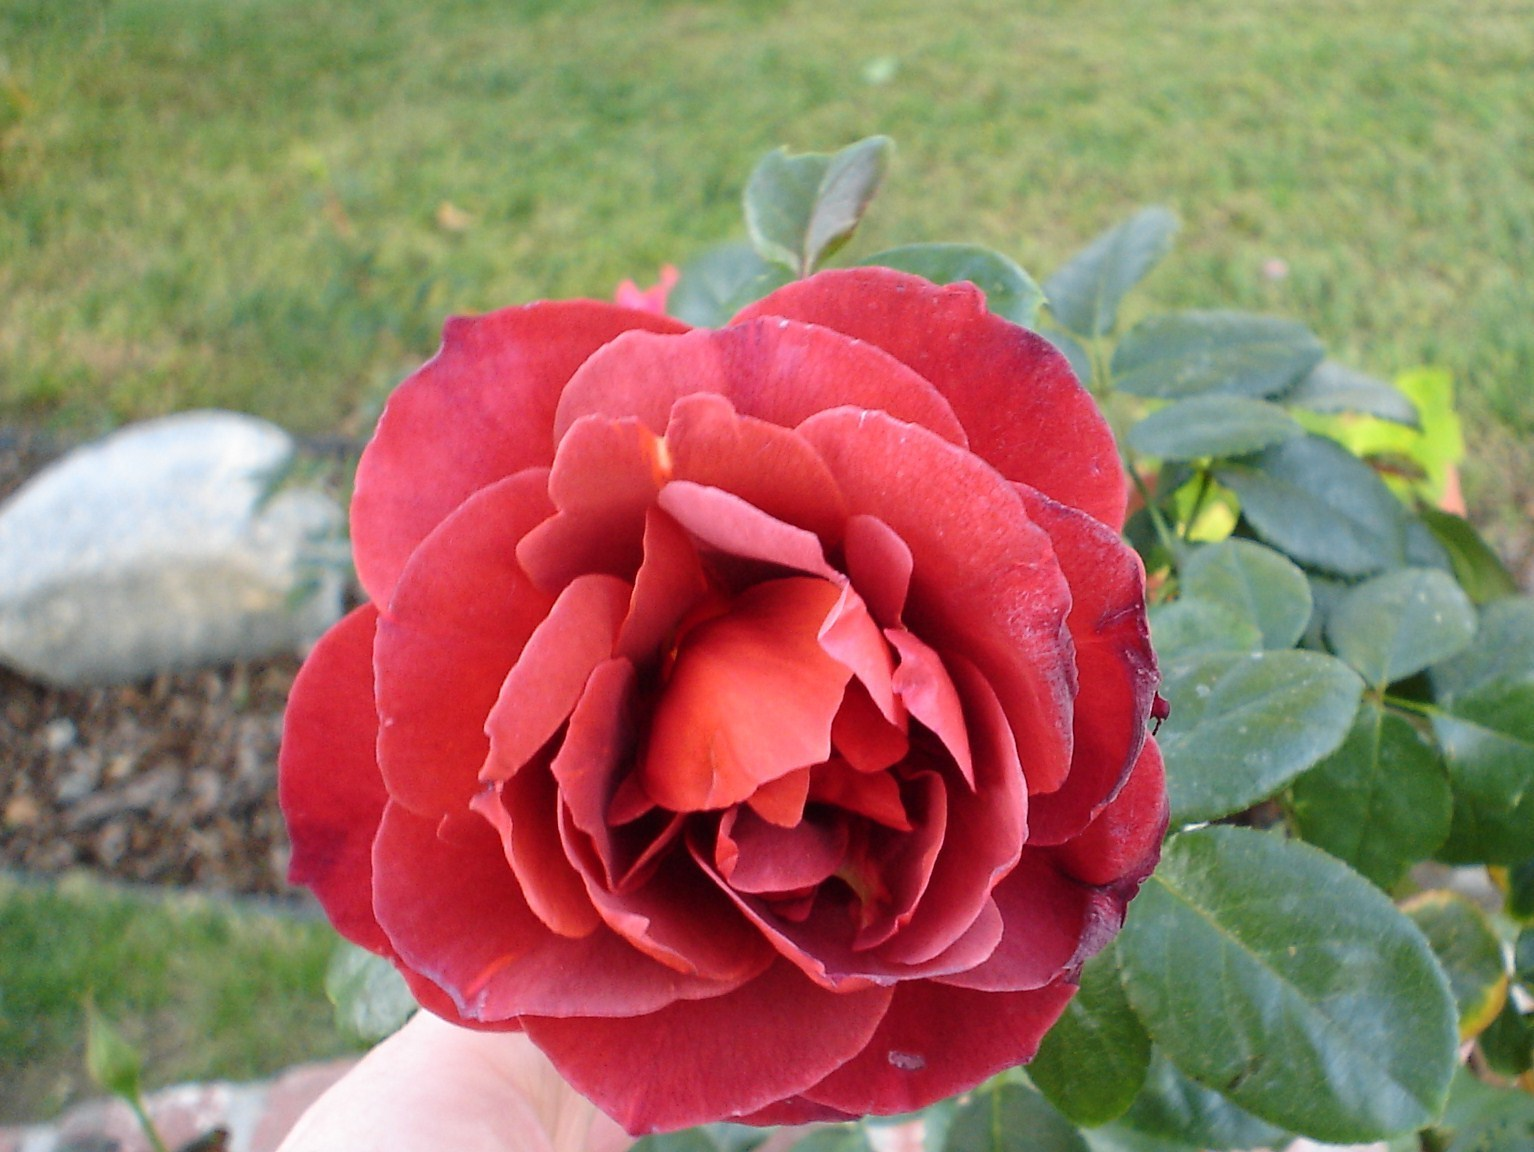 a unique colored rose gardening photo 2791575 fanpop